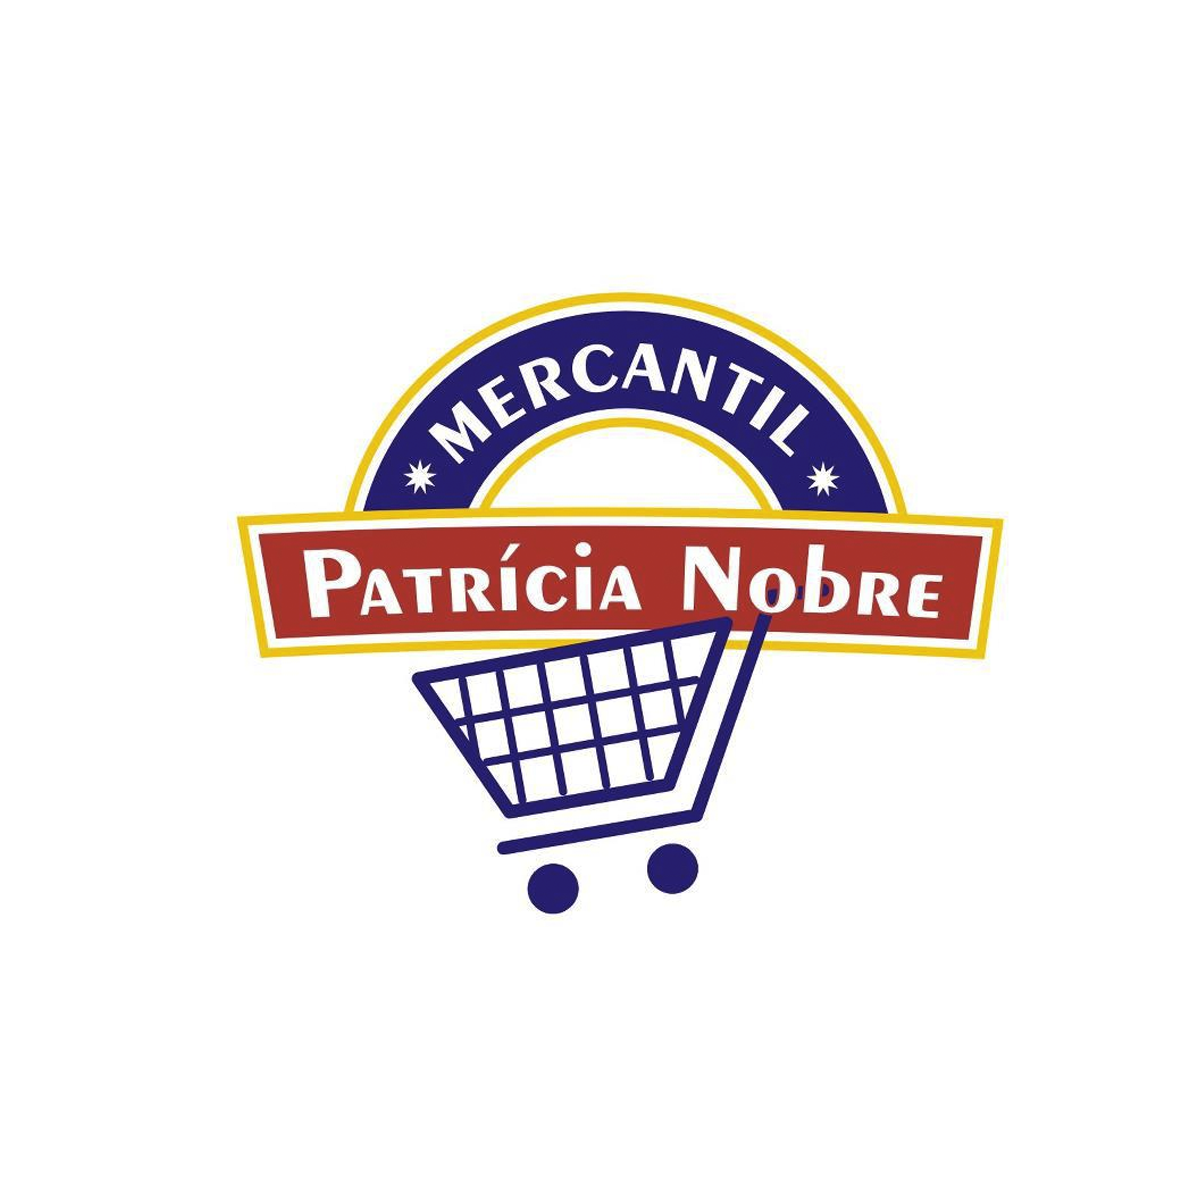 MERCATIL PATRICIA NOBRE